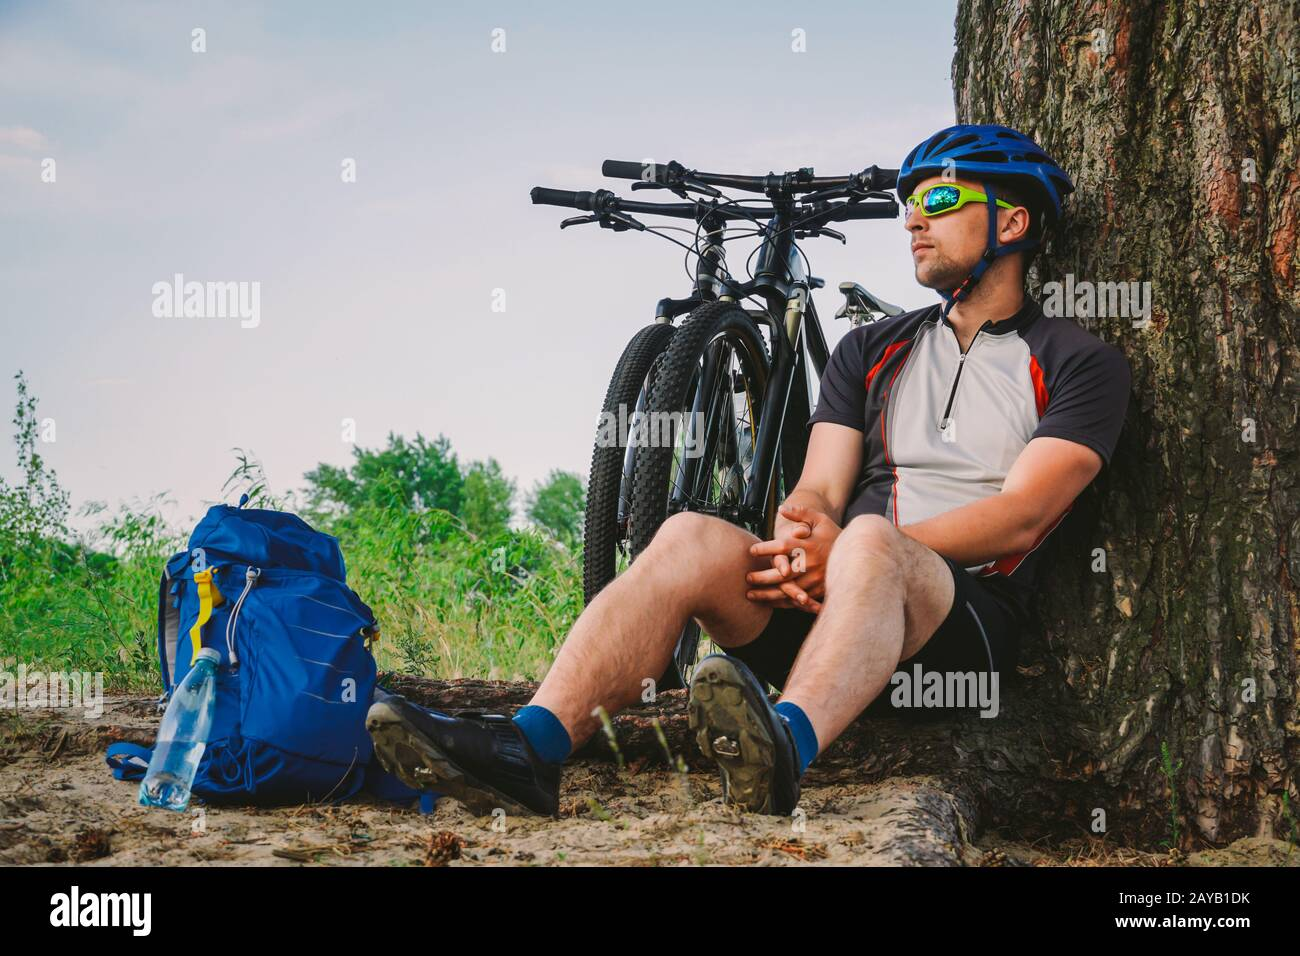 male mountain biker resting on bike ride, sitting on ground under a tree with his mountain bike, stands next to him, enjoying th Stock Photo